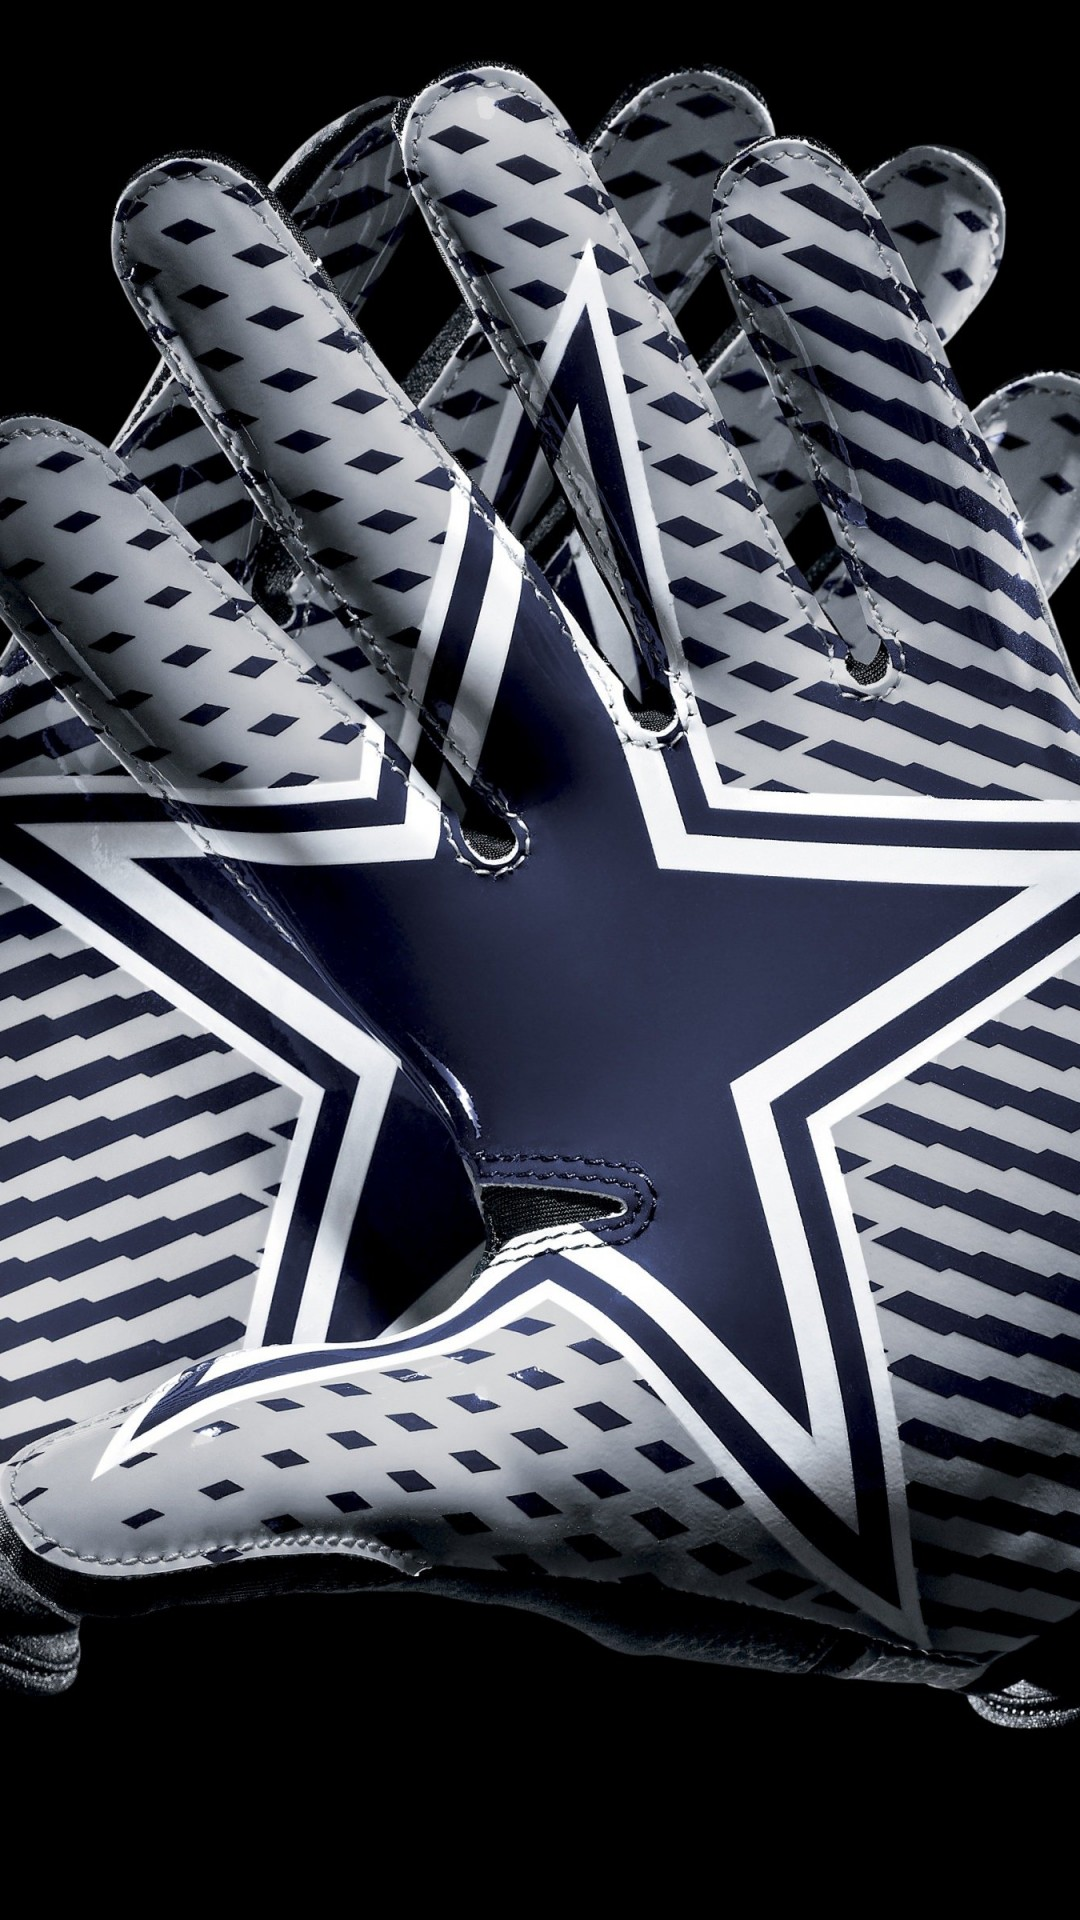 Dallas Cowboys Gloves Wallpaper for SONY Xperia Z2